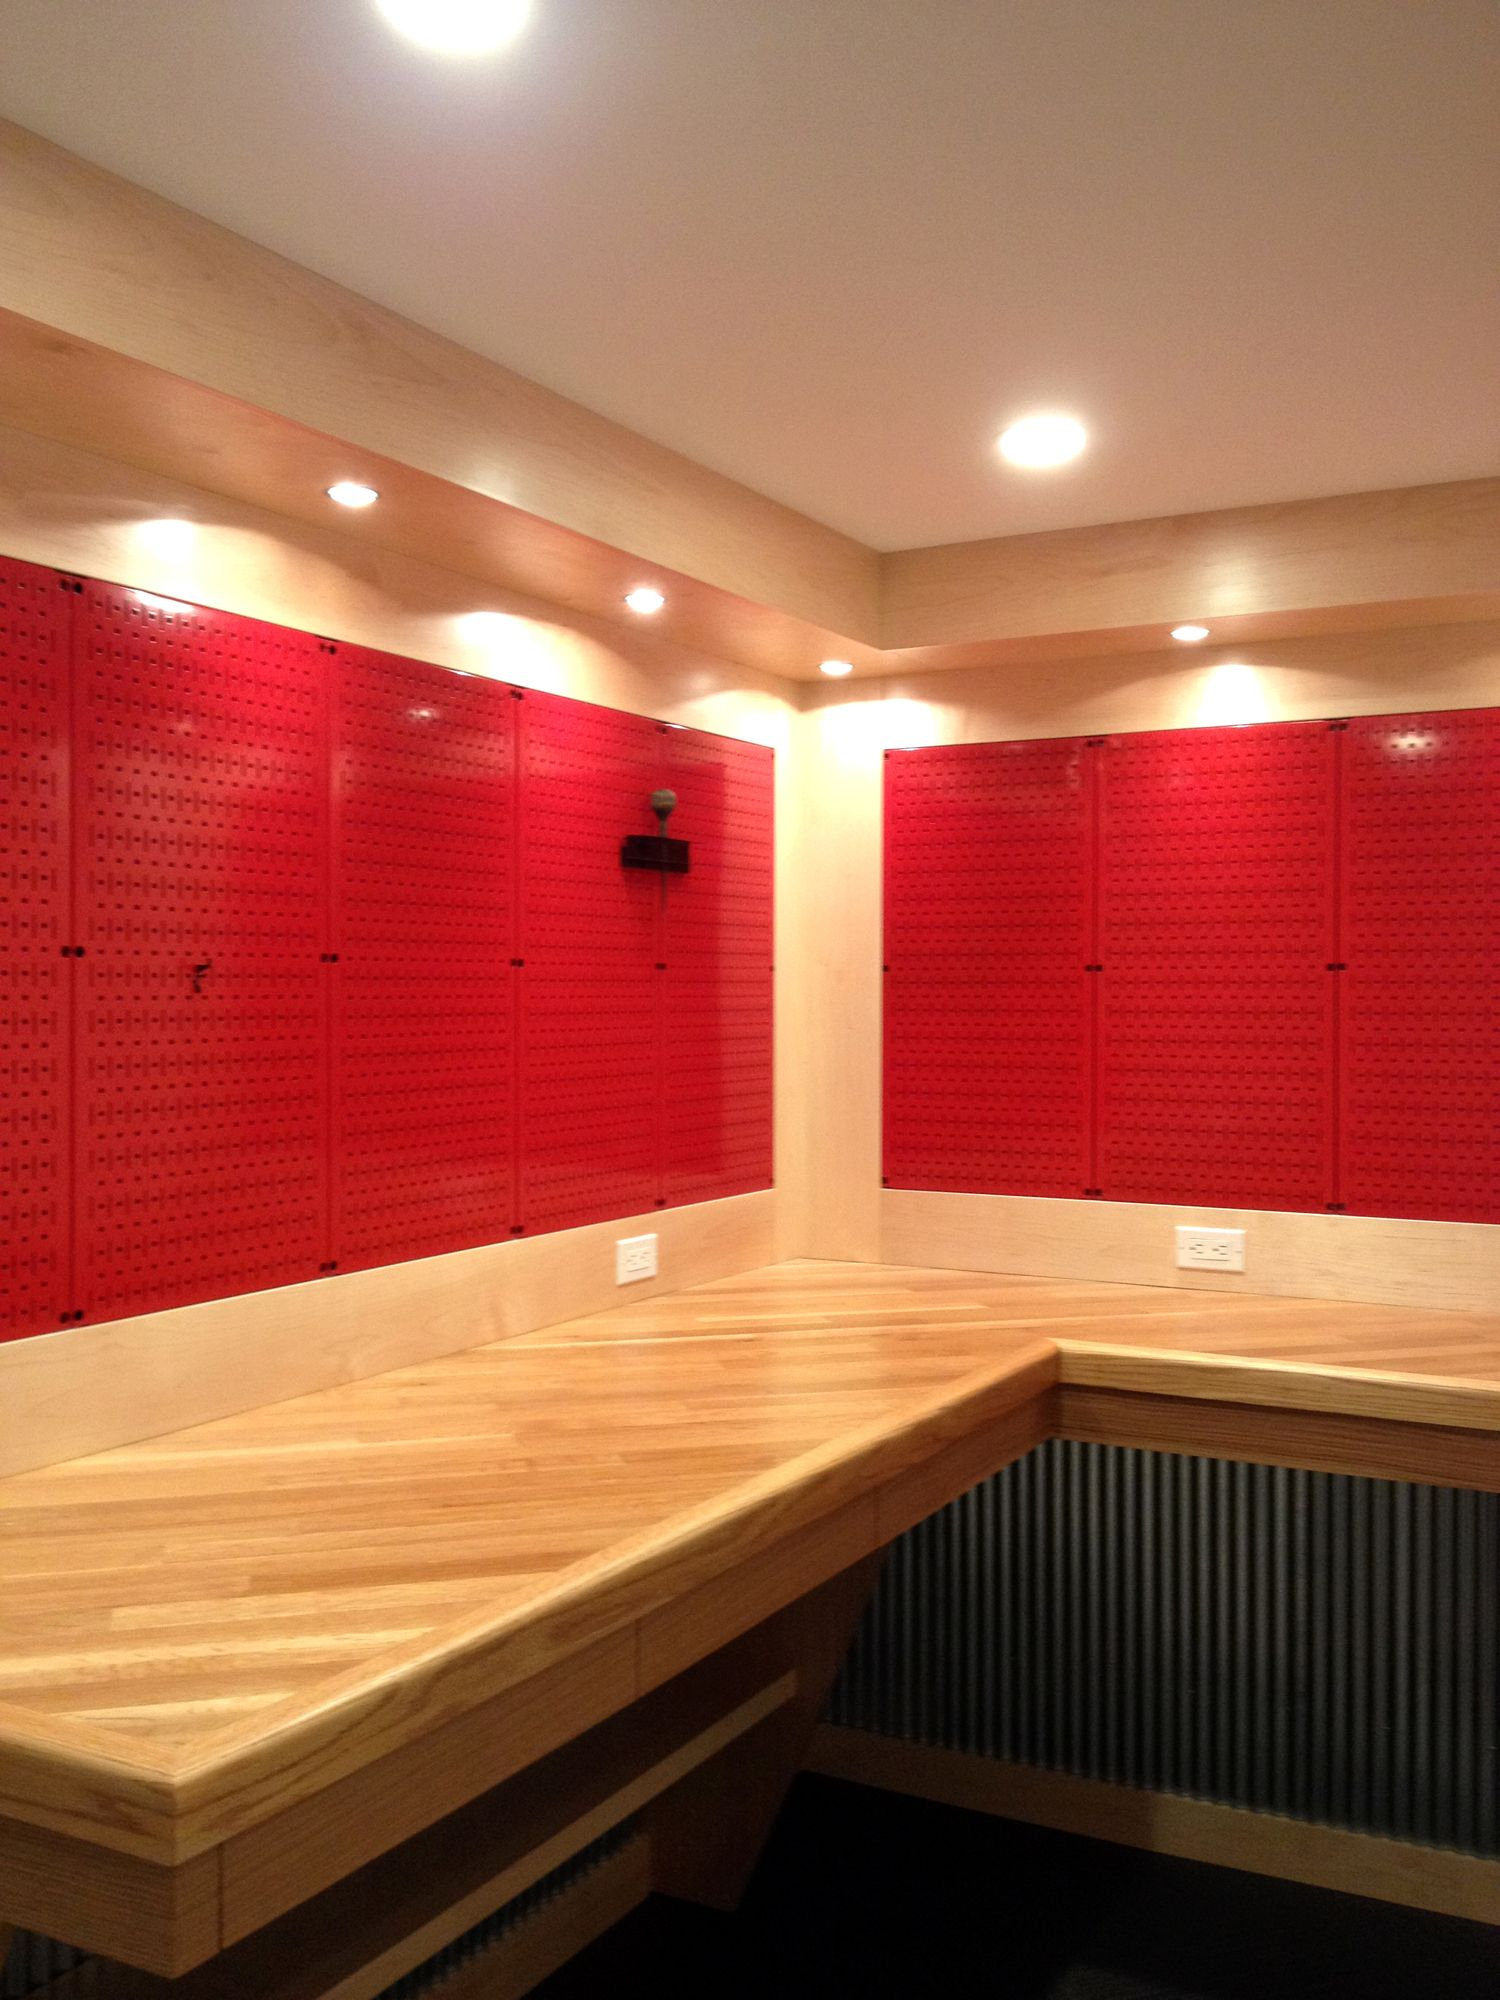 A Really Nice Workbench With Red Metal Pegboard Panels From Wall